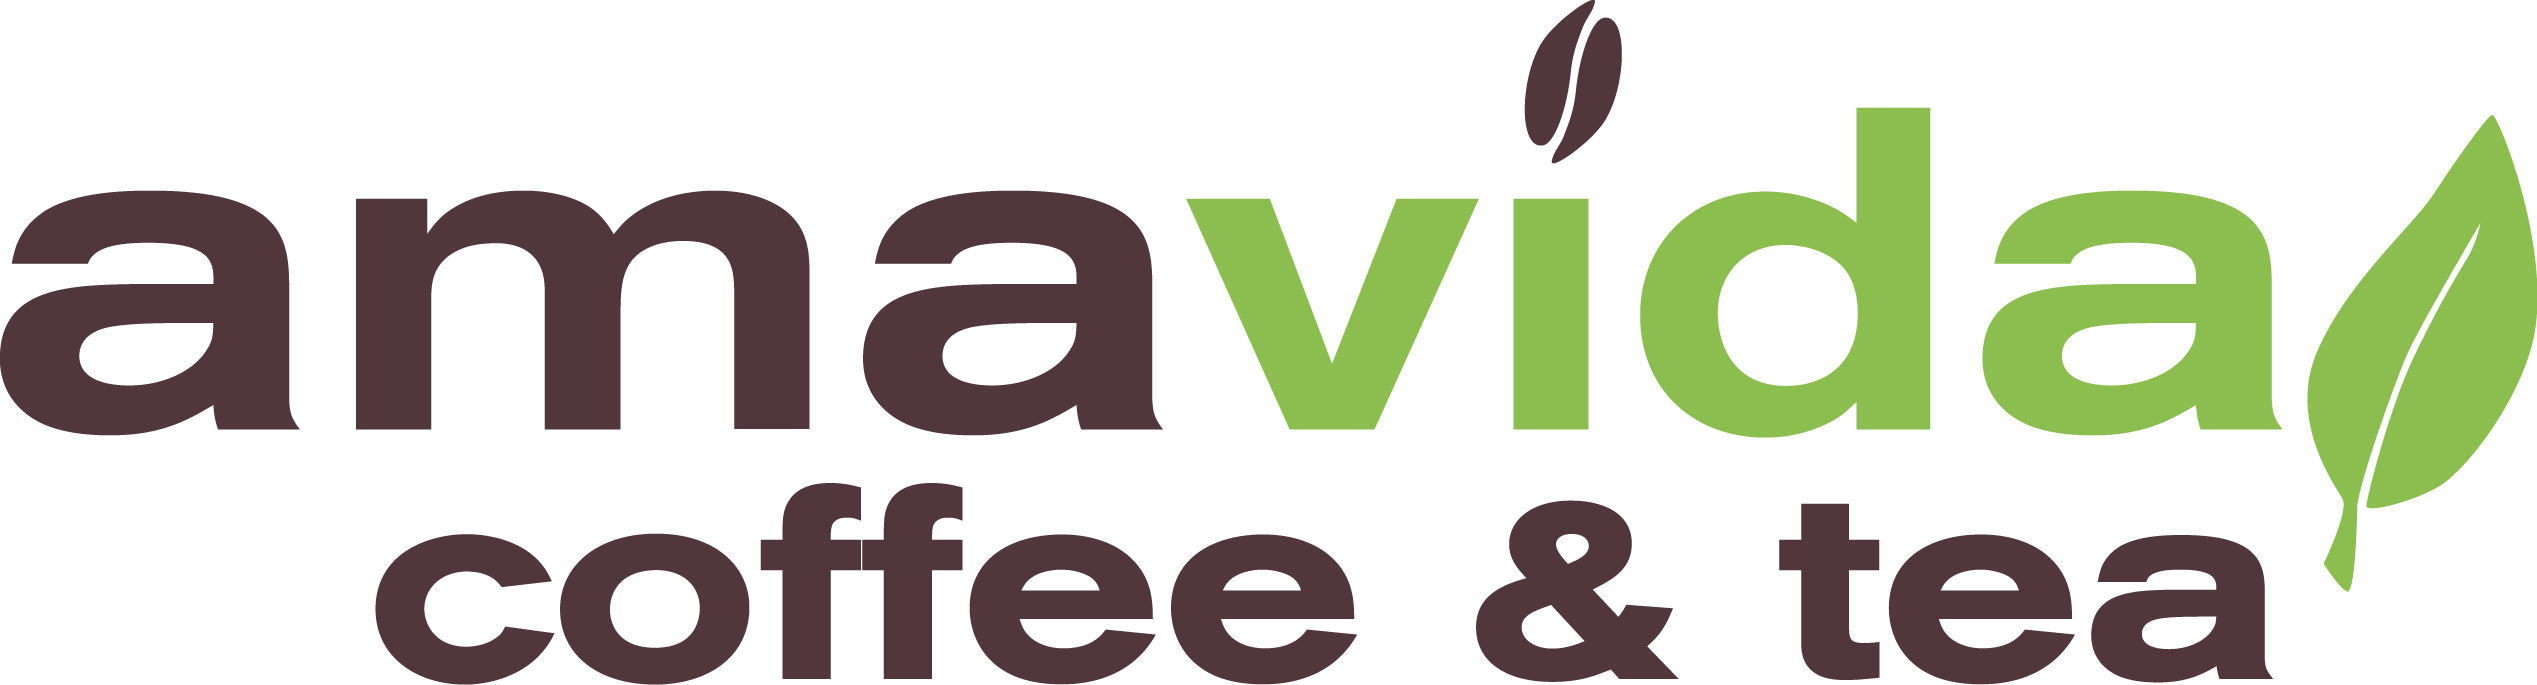 coffee_amavida.com.jpg